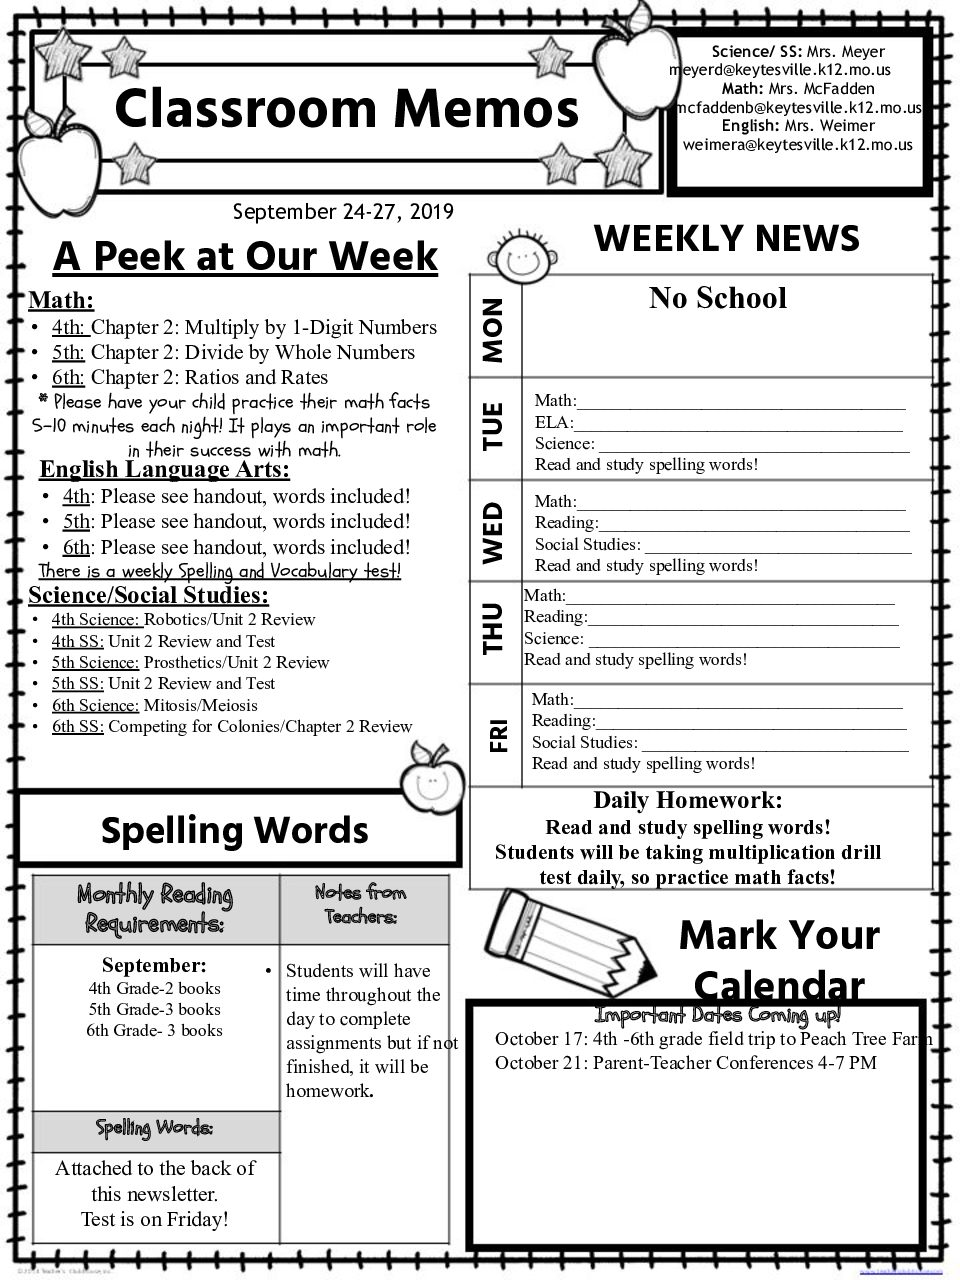 4th-6th Weekly Newsletter September 24-27